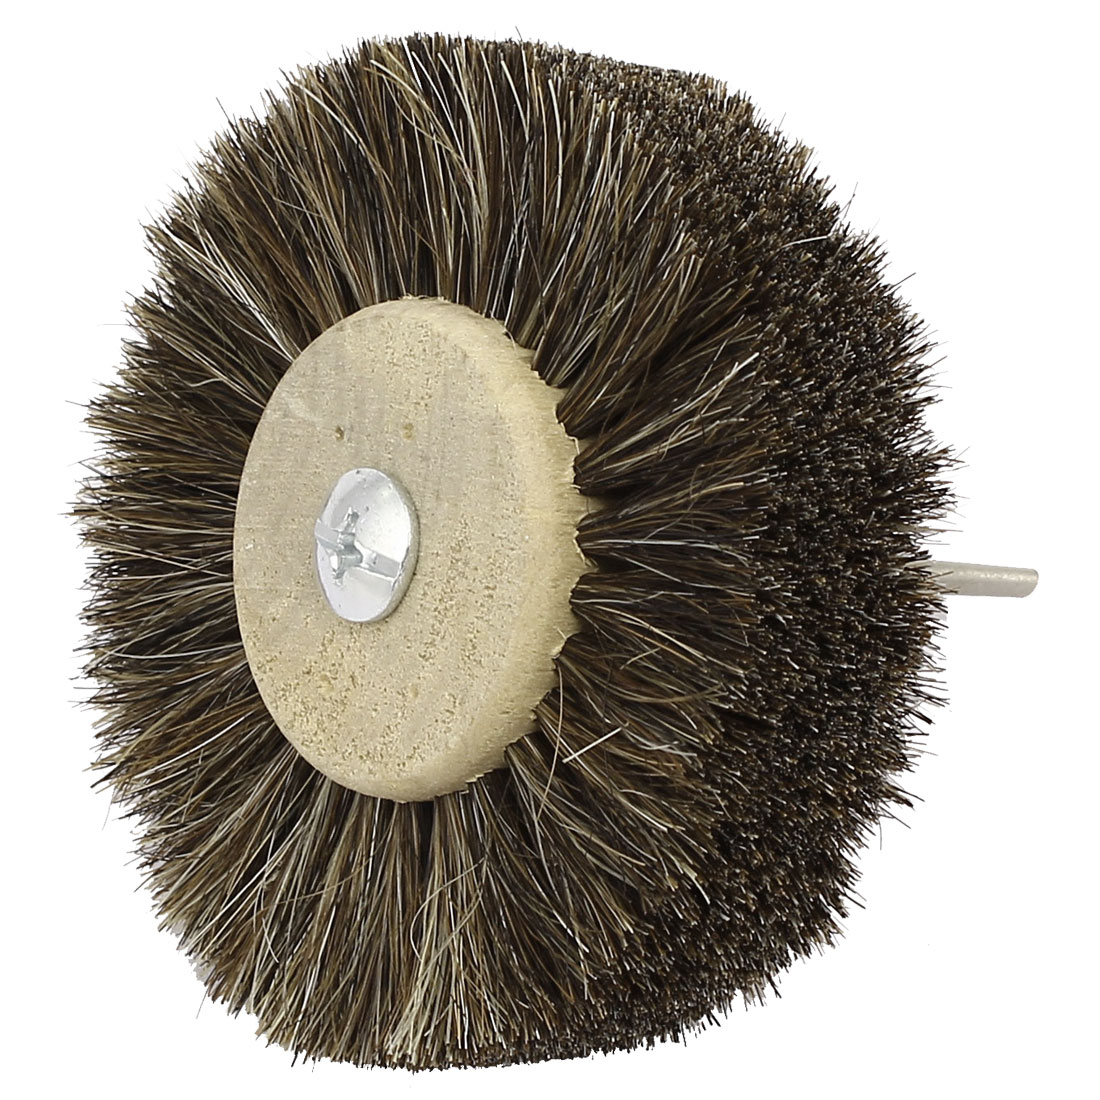 80mm Dia Head 3mm Shank Wooden Hub Horse Wheel Brush Jewelry Polishing Tool